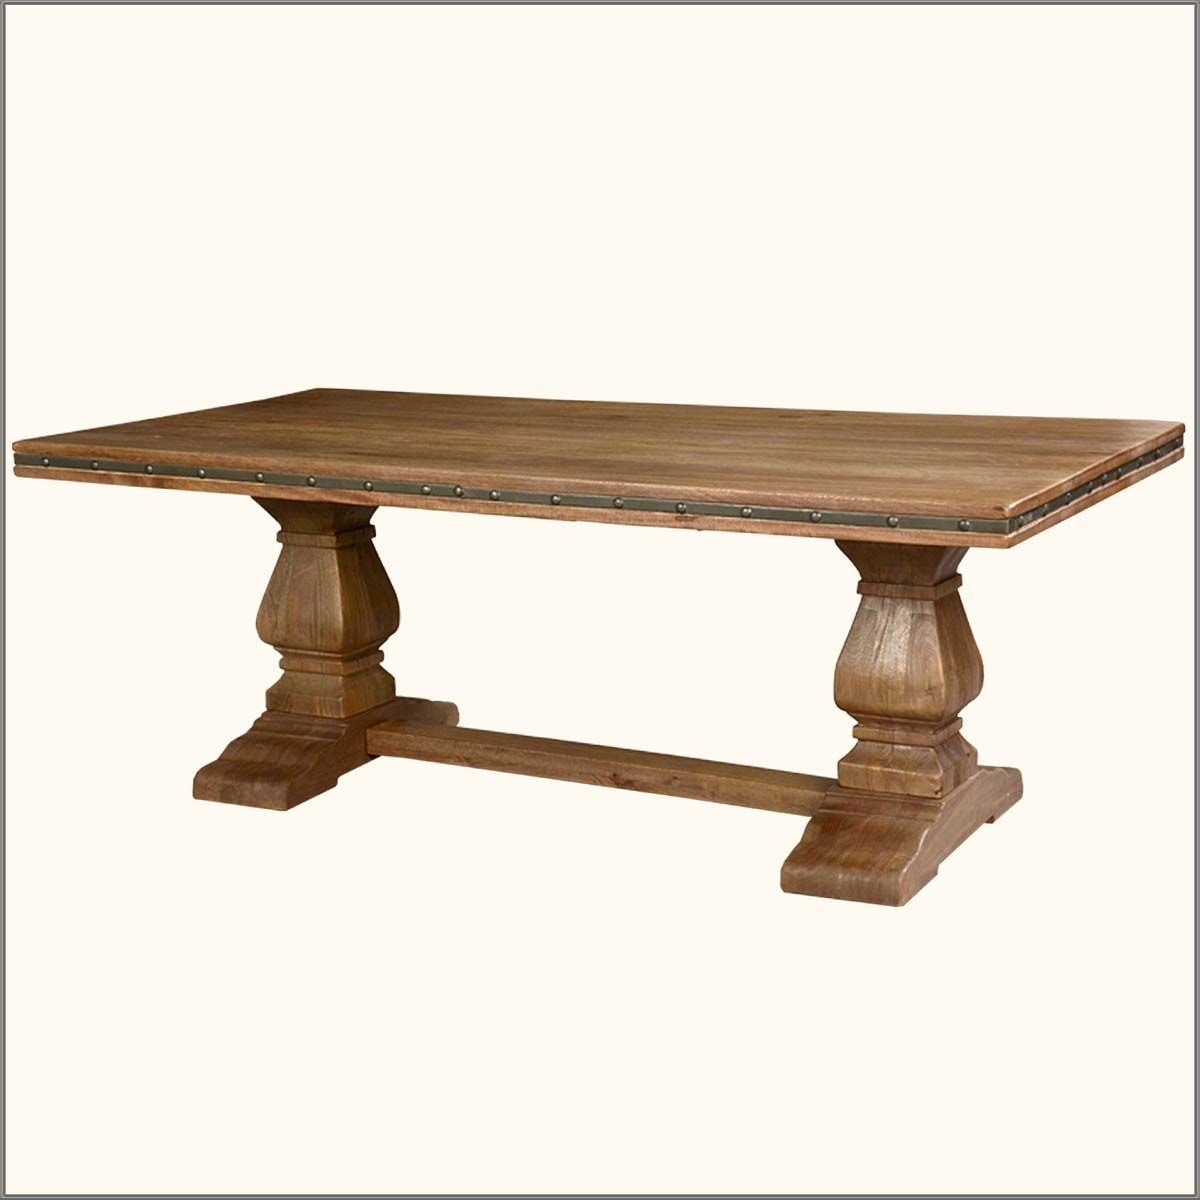 Wood trestle base tables rustic solid wood trestle pedestal base harvest dining